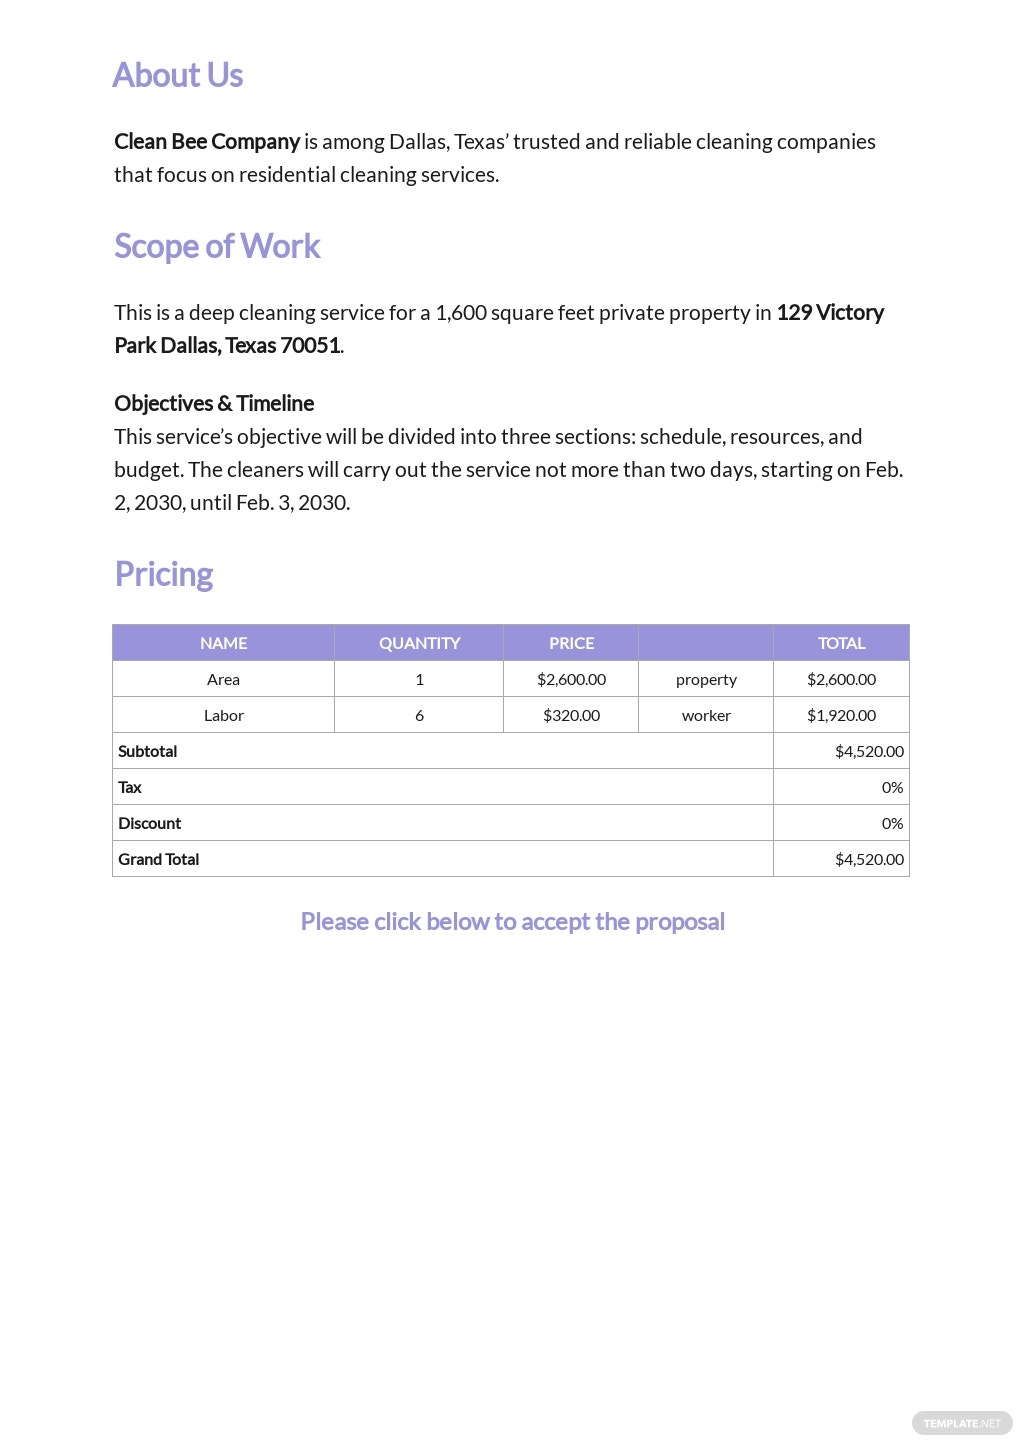 Sample Cleaning Contract Proposal Template 1.jpe